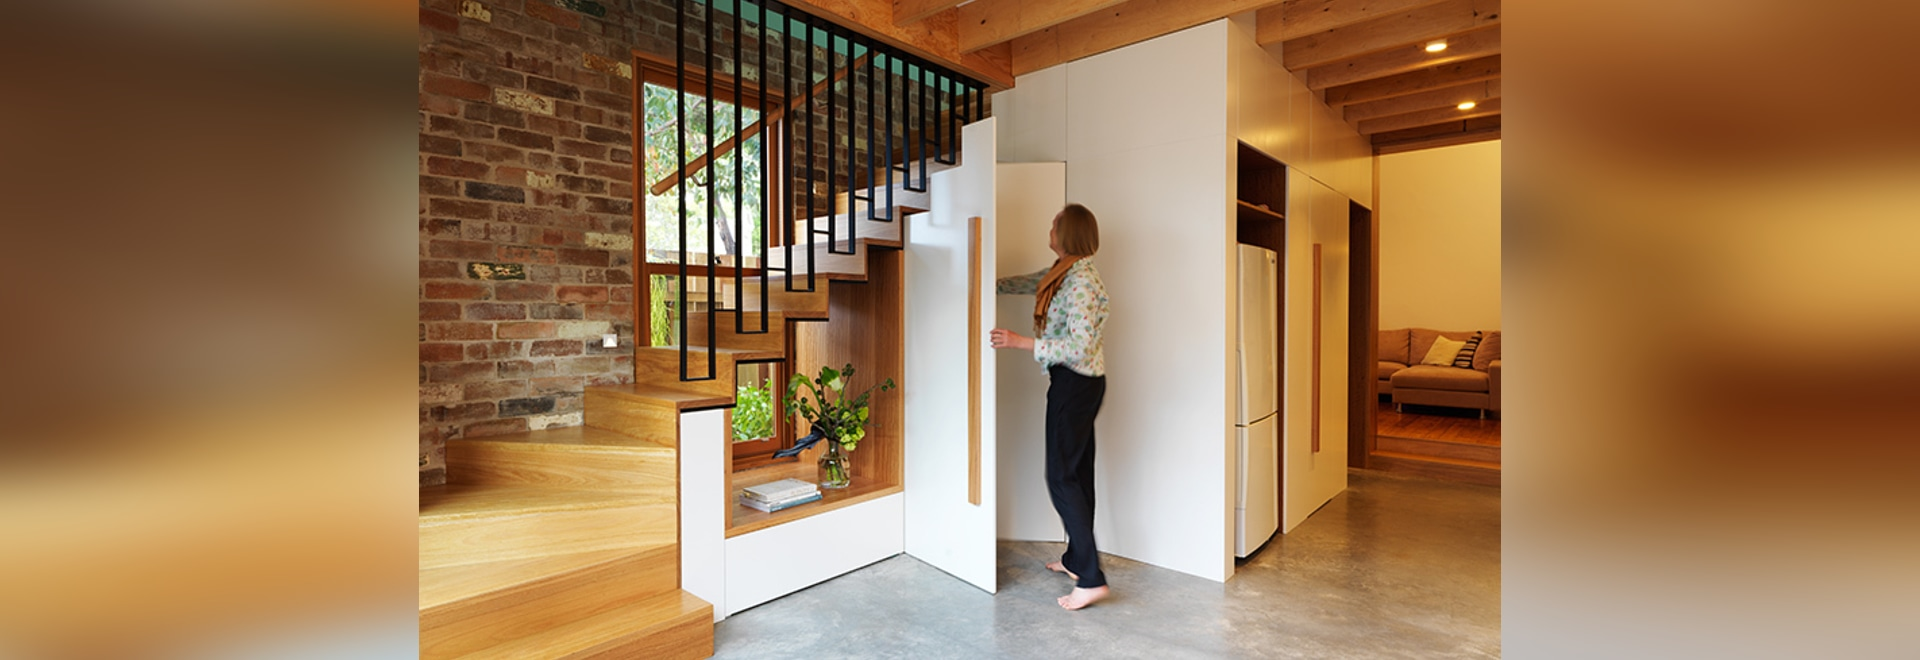 Design Detail – A Cut-Out Was Created Underneath The Stairs To Allow Light To Travel Through